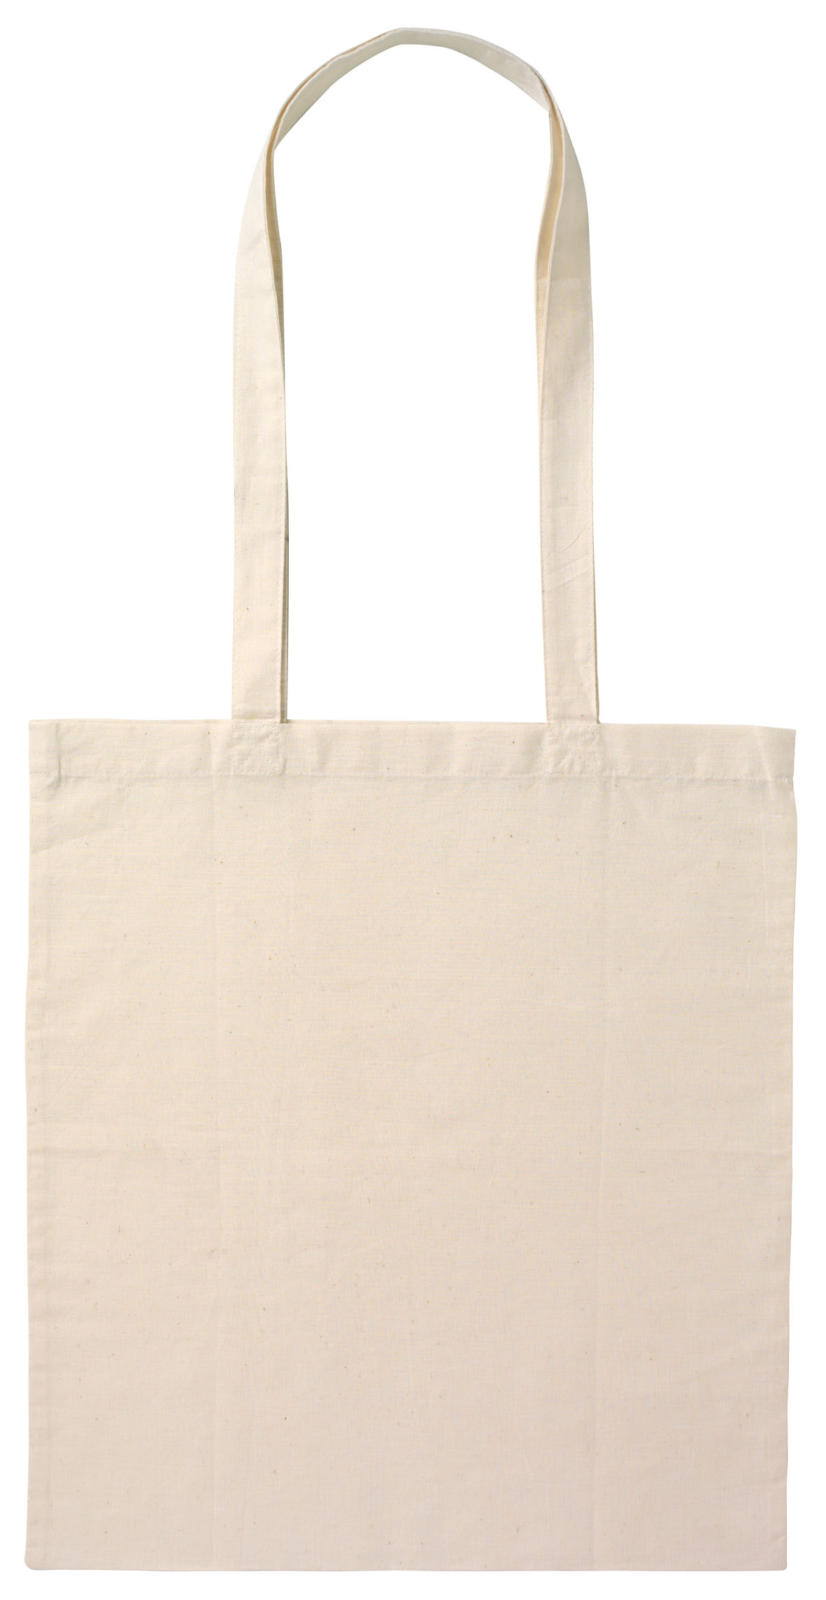 Calico Bag Long Handle - Natural